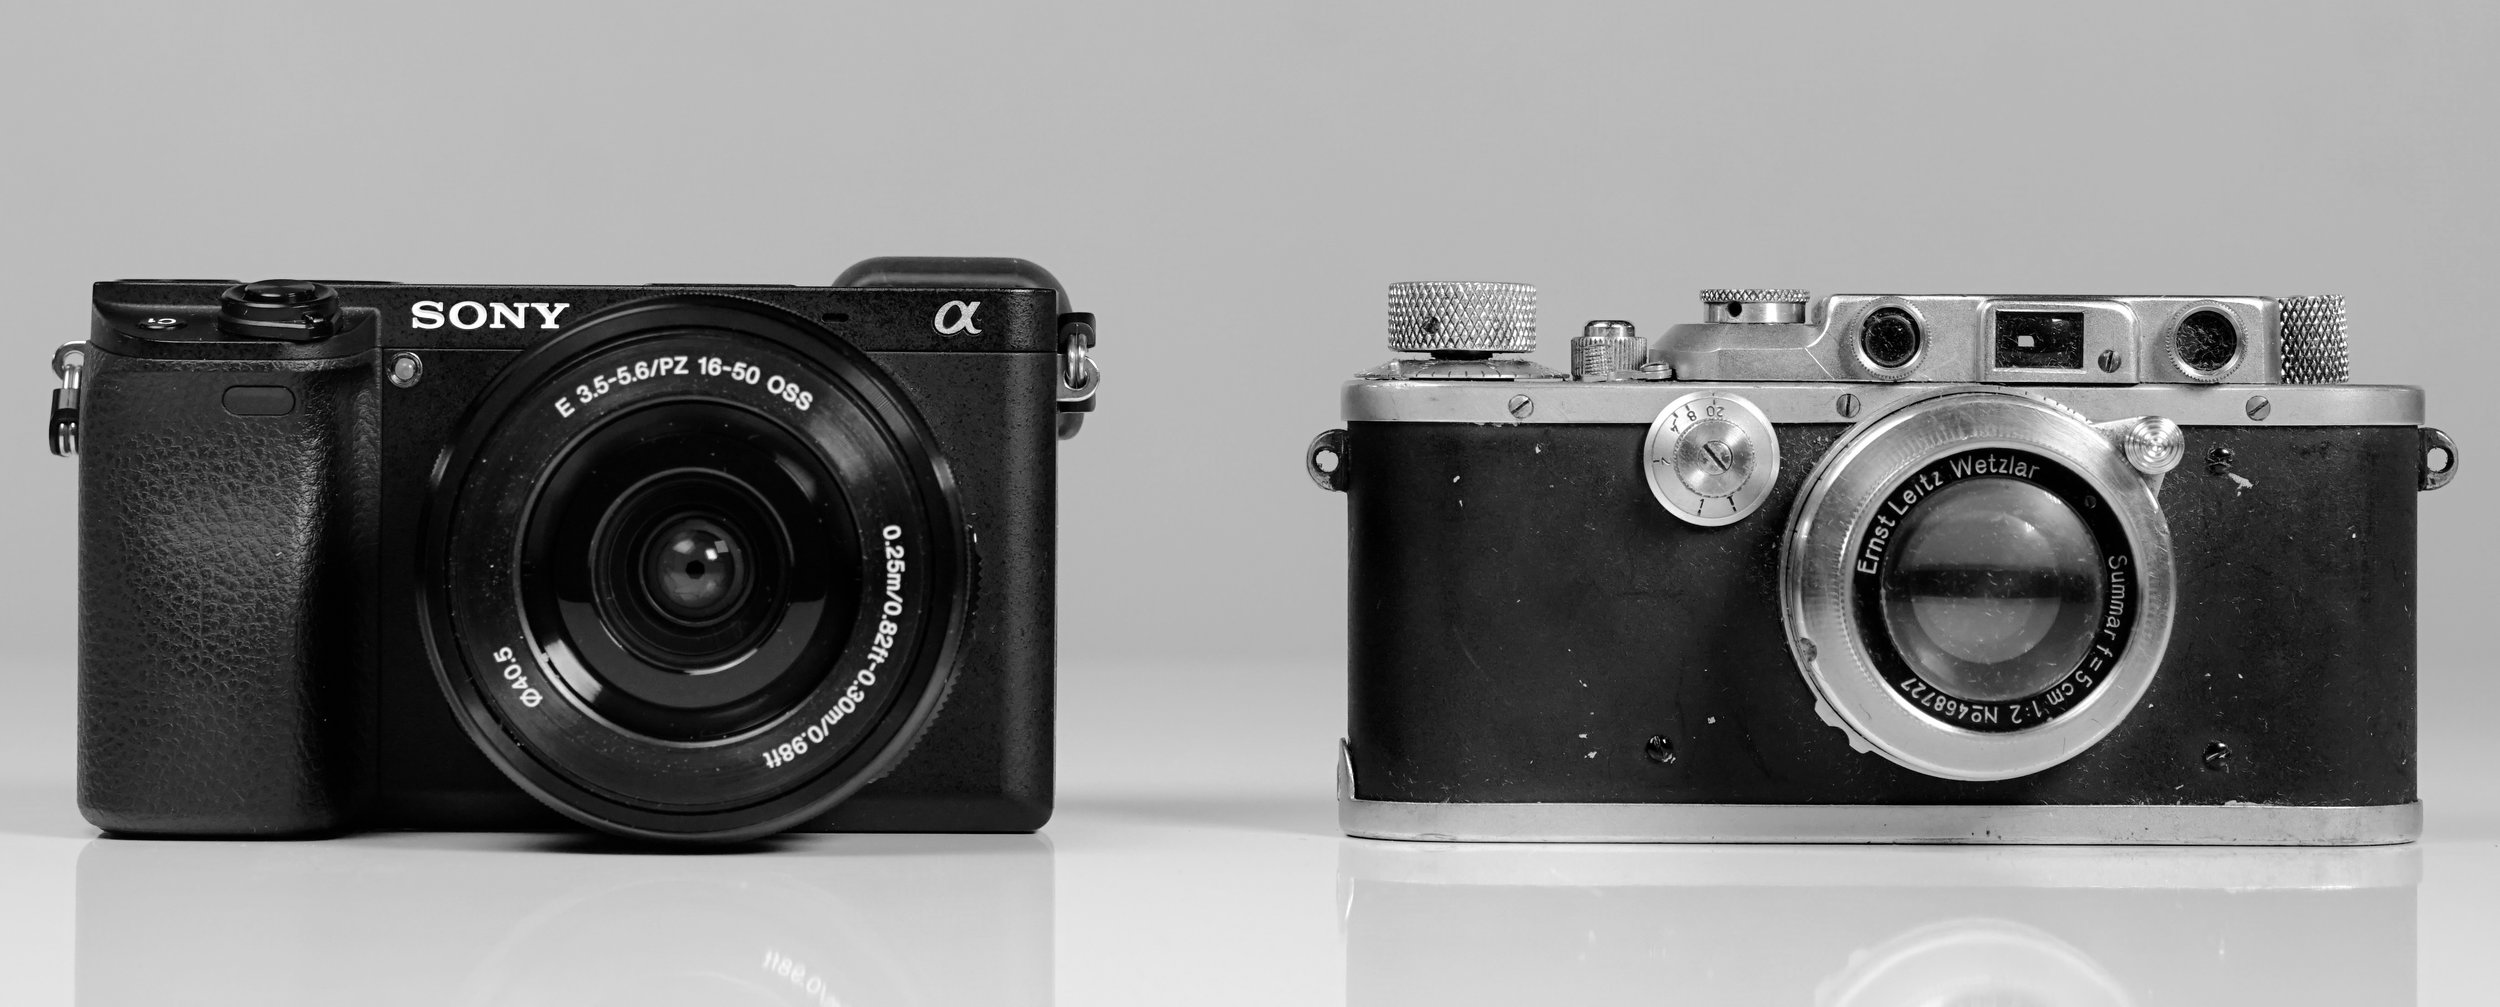 That's my mother's Leica IIIa on the right, bought second-hand from Bauhaus trained photographer  Hilde Hubbuch , similar to the one used by Henri Cartier-Bresson.This is the camera that introduced me to photography. On the left, my Sony a6300 with kit lens for size comparison.